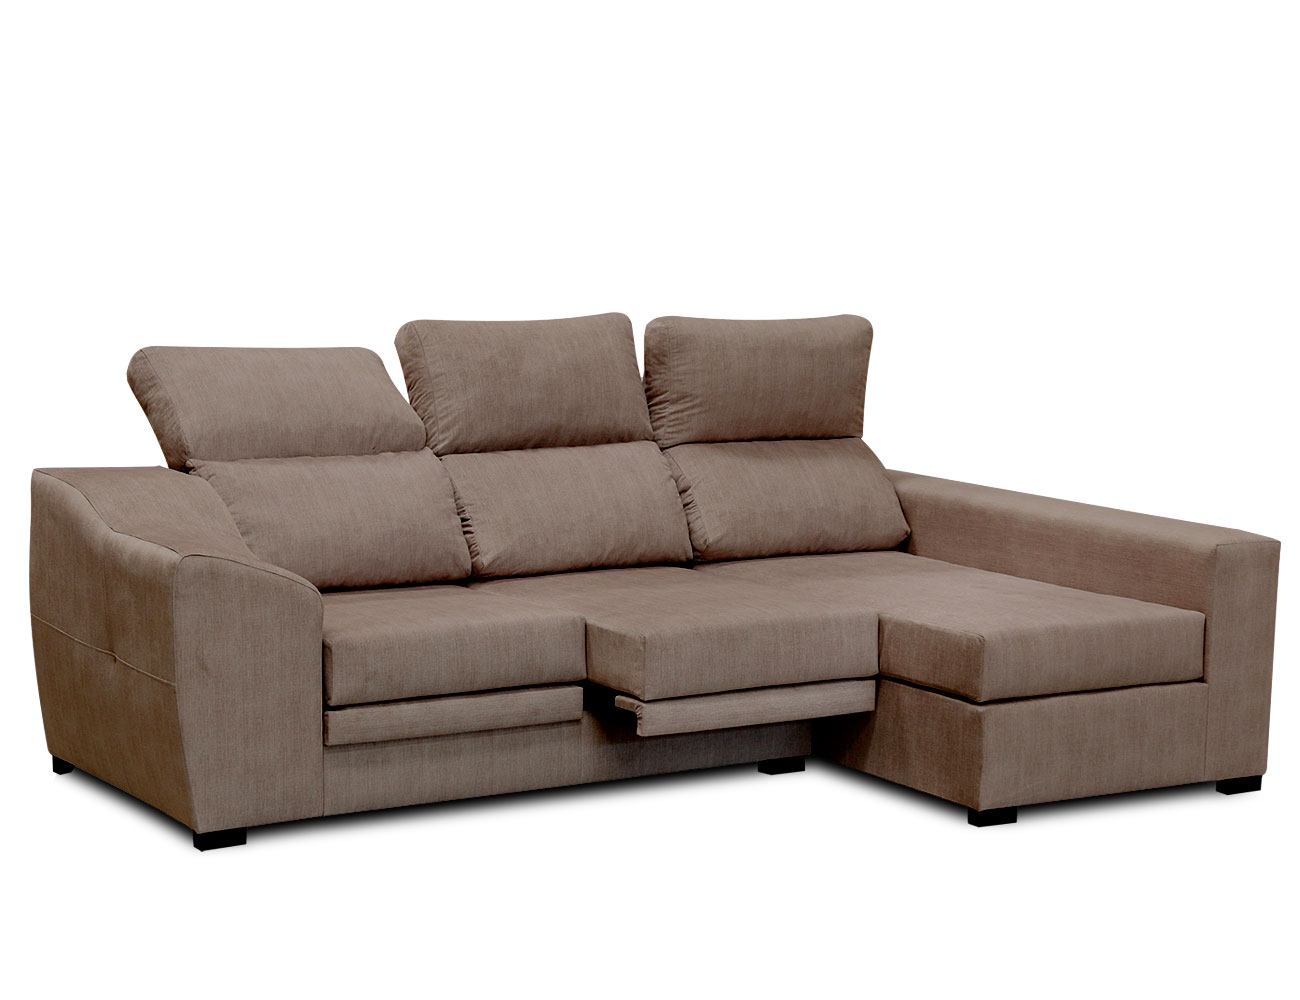 Sofa chaiselongue moderno moka 3